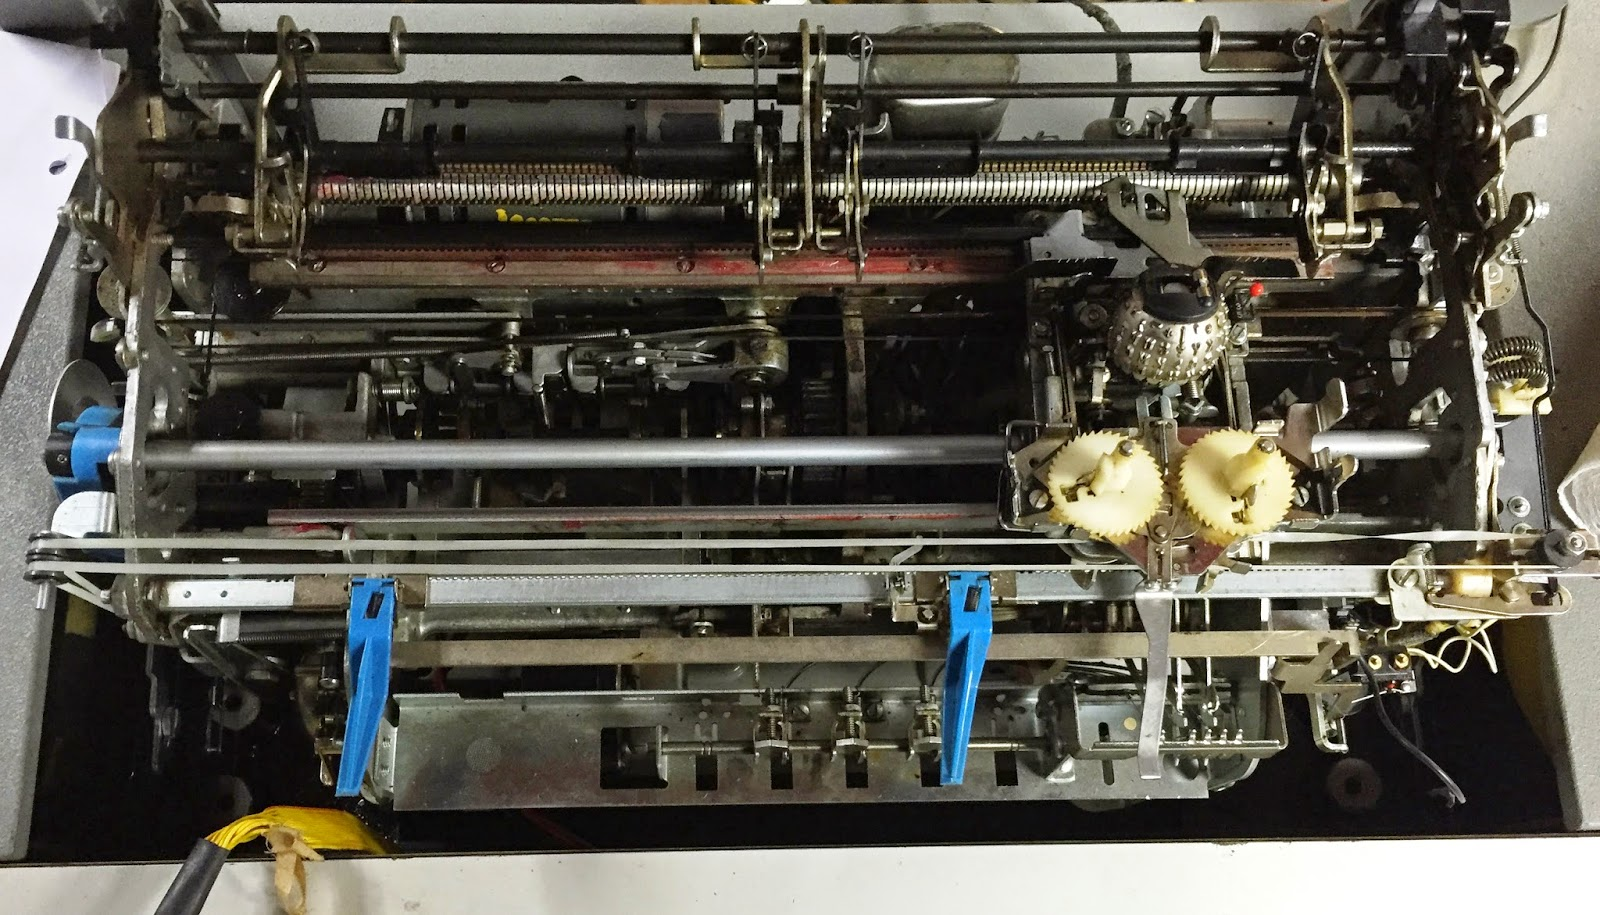 Rescue 1130: 2014 Pickup of an IBM 1130 System and More